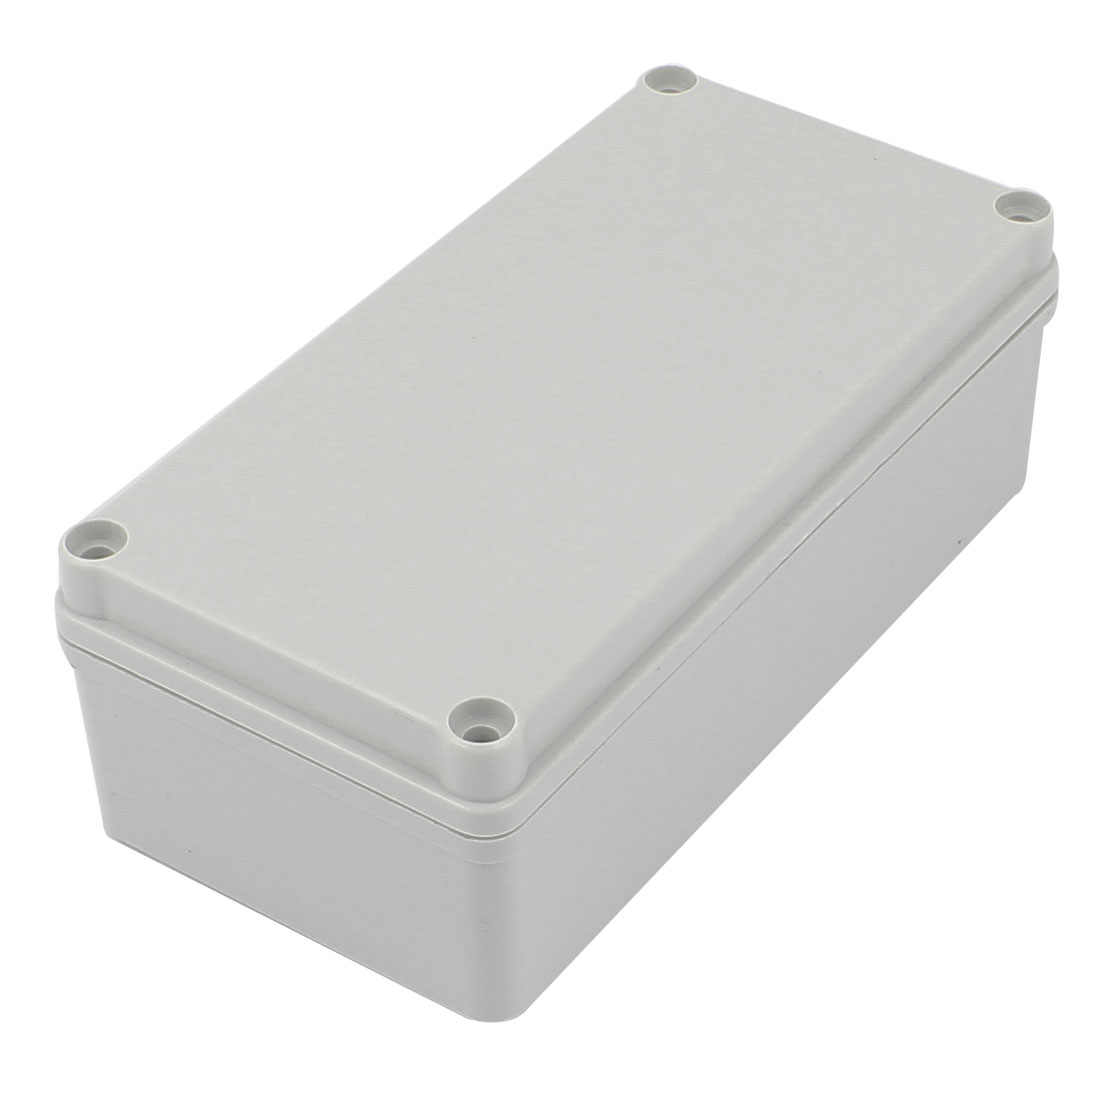 160mm x 80mm x 55mm Plastic Dustproof IP65 Sealed Enclosure Case DIY Junction Box